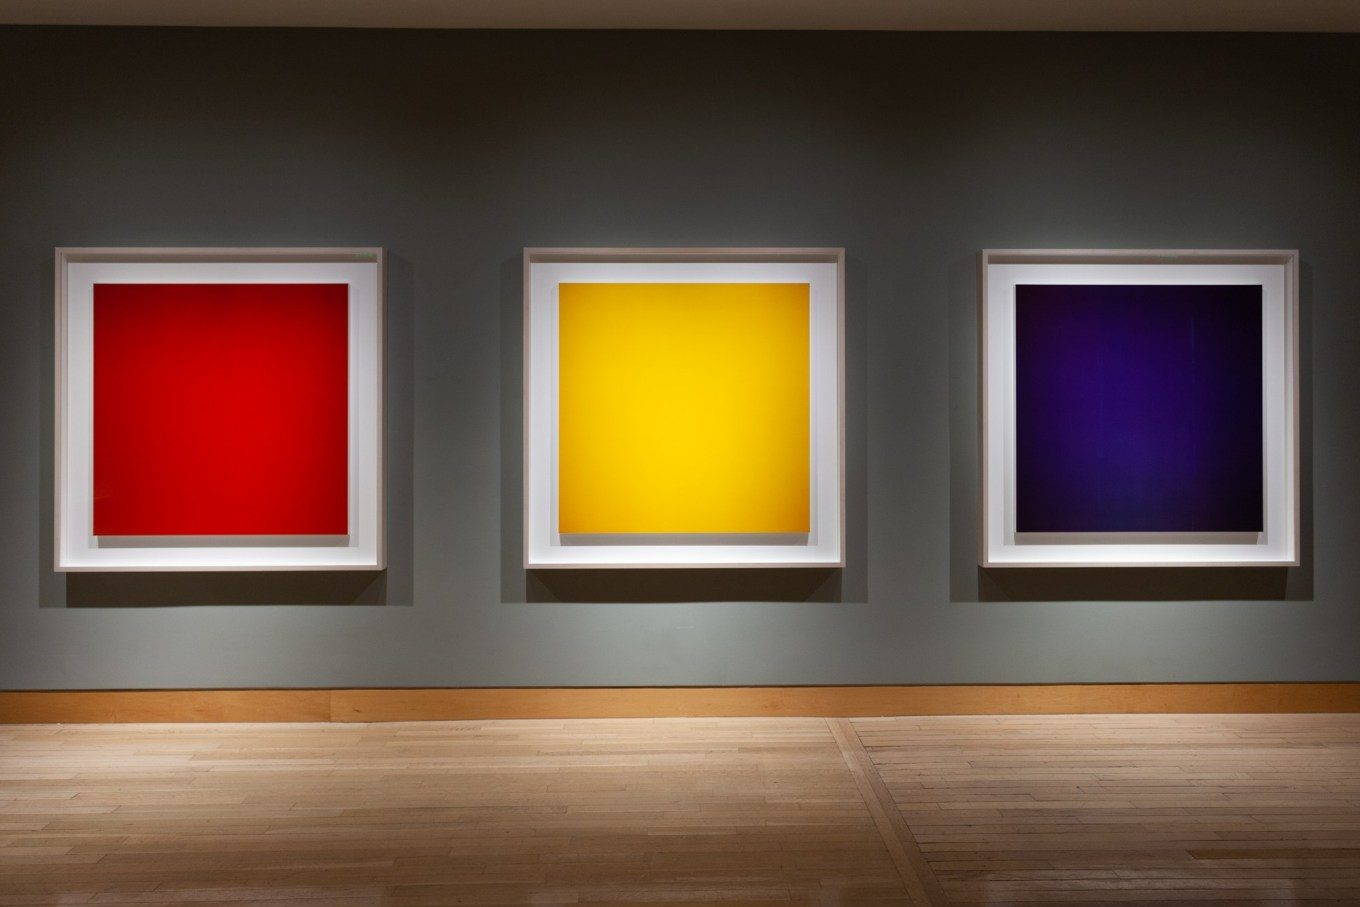 Three large square photographs hanging on a dark gray wall, each photograph is a single solid color: red, yellow, and blue, respectively